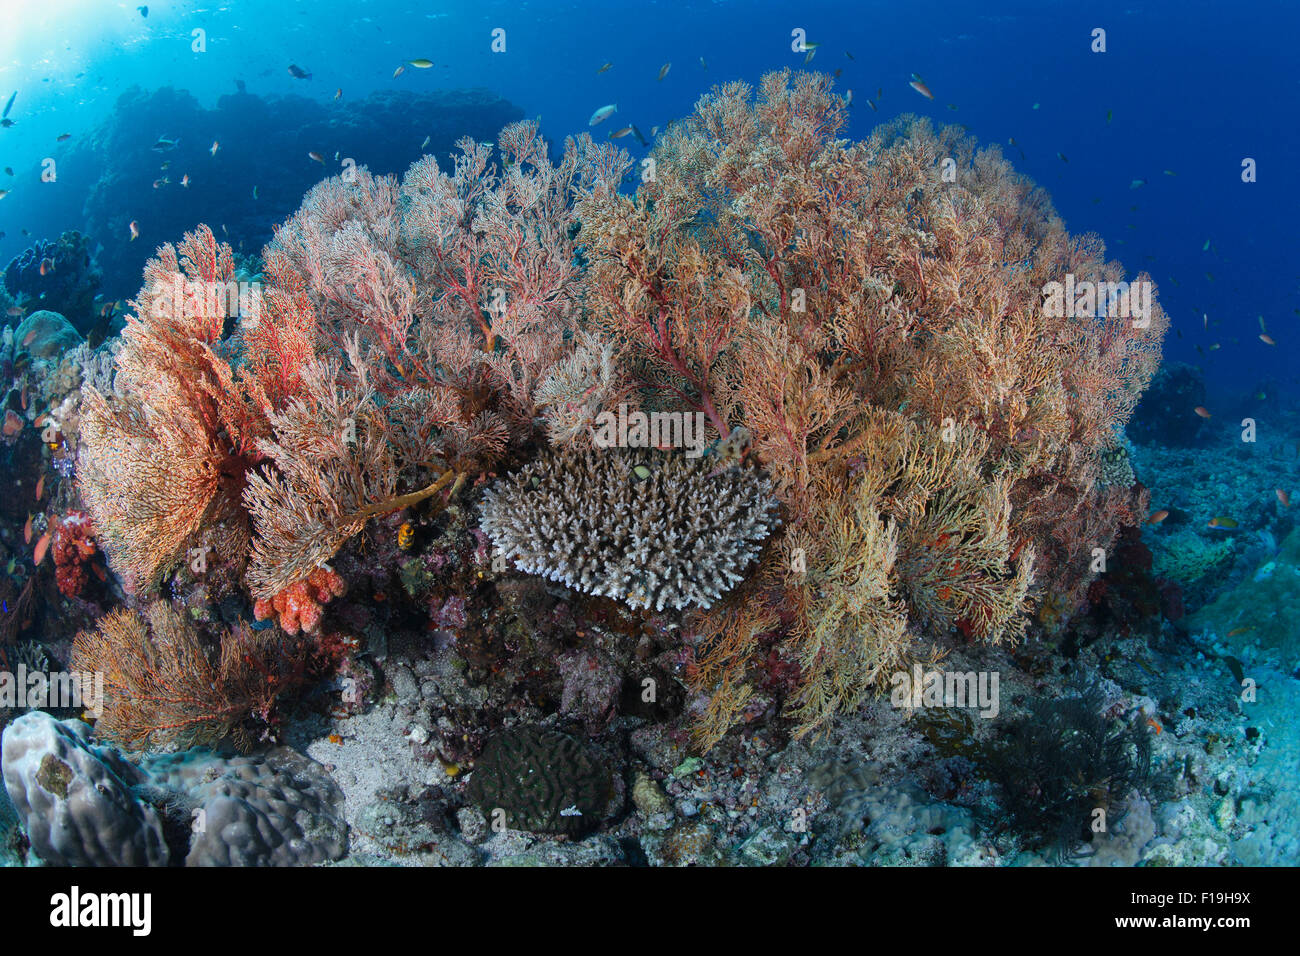 px0668-D. sea fans (Melithaea sp.). Indonesia, tropical Pacific Ocean. Photo Copyright © Brandon Cole. All rights Stock Photo